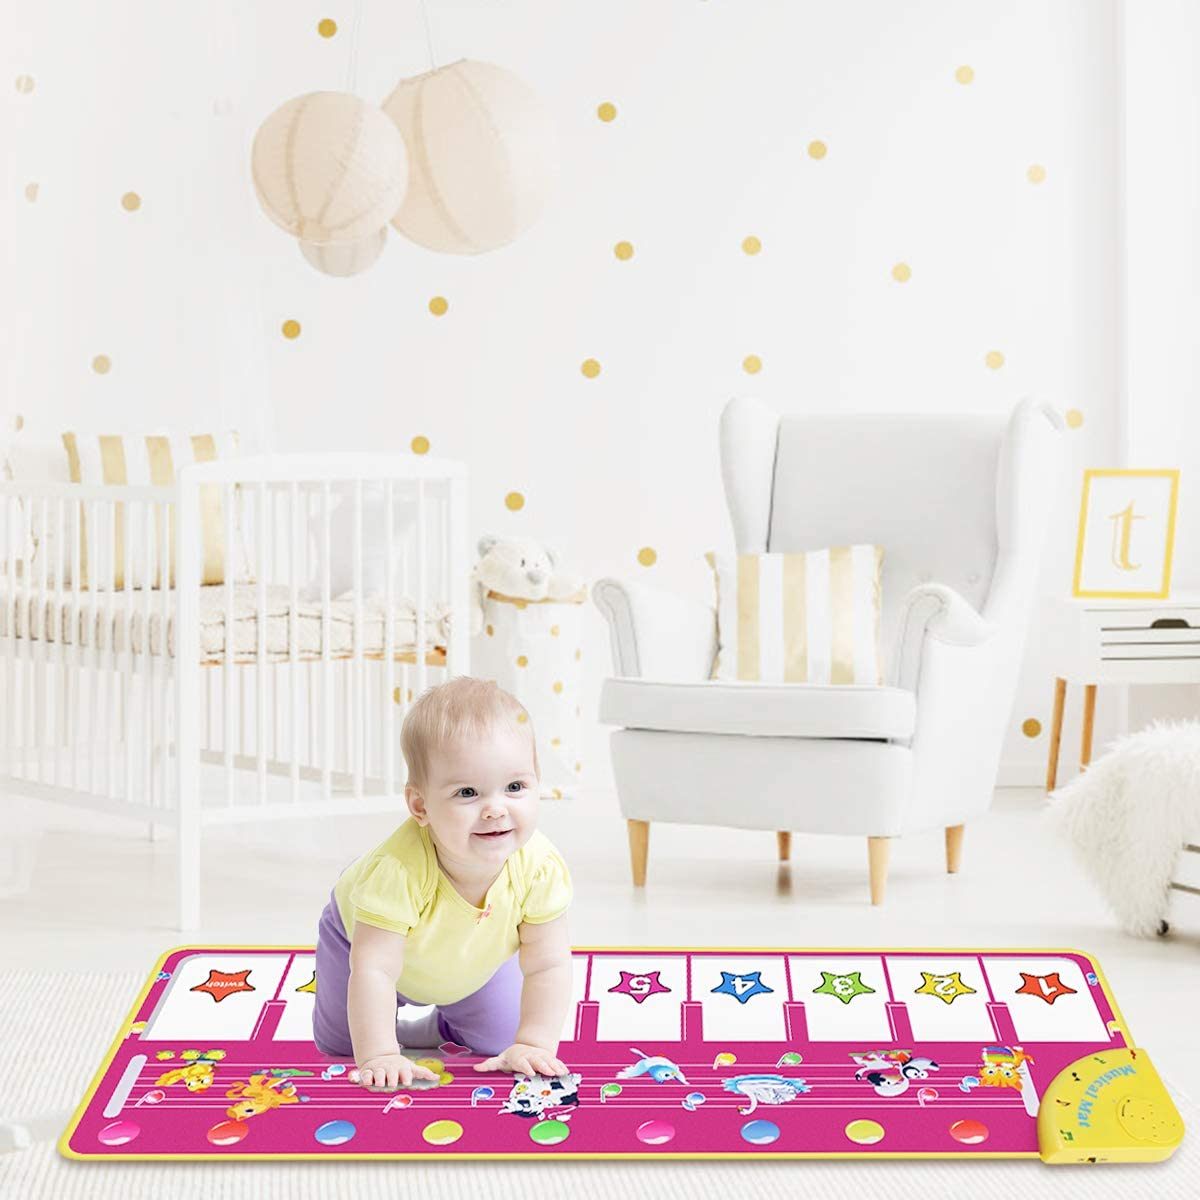 RenFox Kids Musical Keyboard Piano Mat, Electronic Music Play Blanket Dance Mat With 8 Different Animal Sound For Early Learning Education Toys Gift For Toddler Baby Boys Girls (Batteries Included)